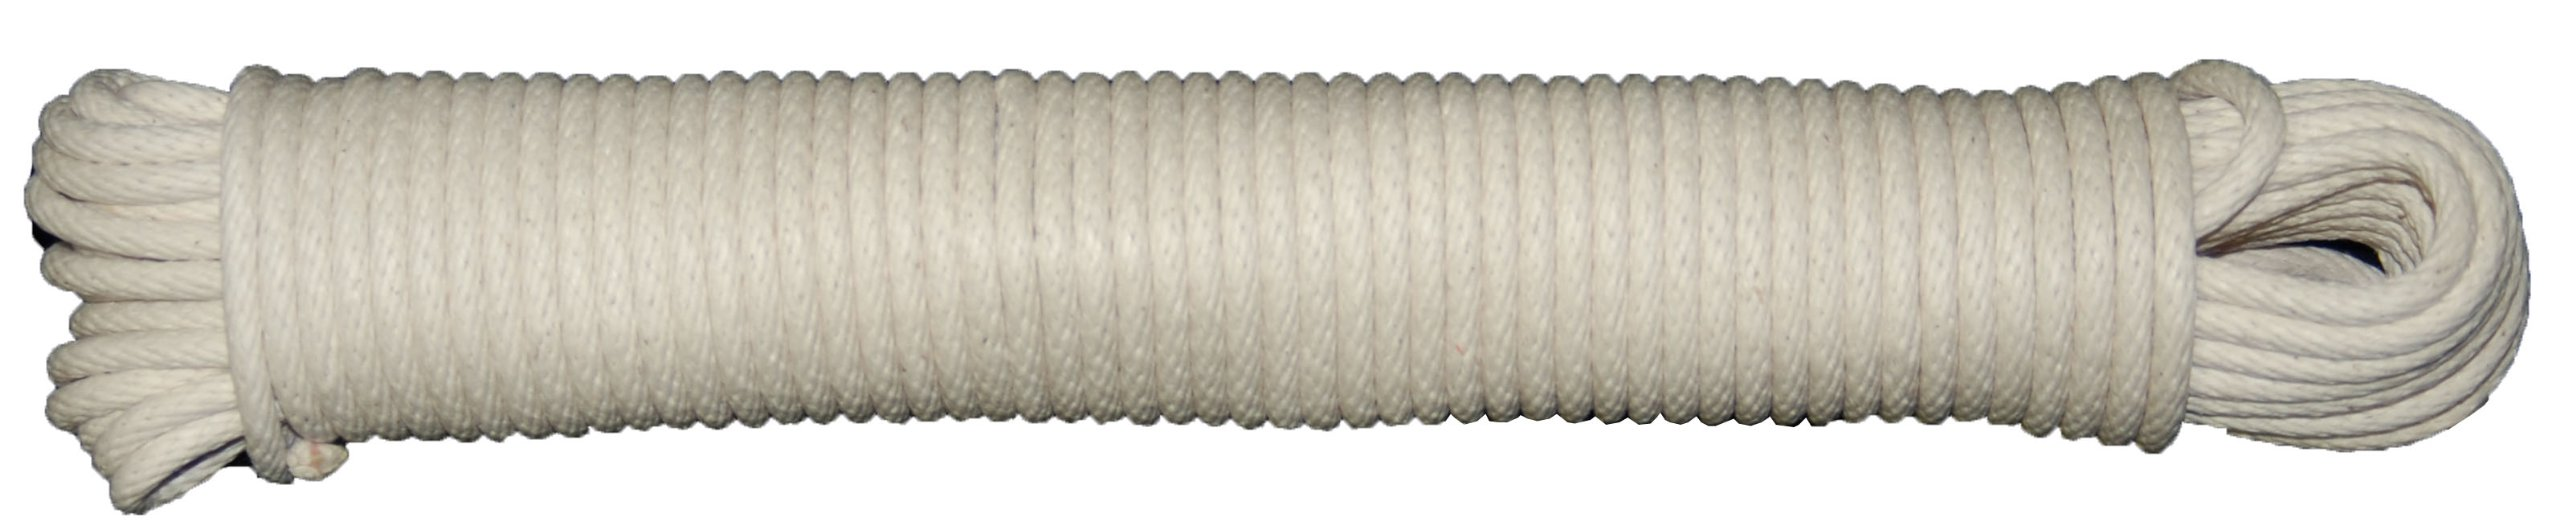 T.W Evans Cordage 46-090 Number-9 9/32-Inch Buffalo Cotton Sash Cord 100-Feet Hank by T.W . Evans Cordage Co.